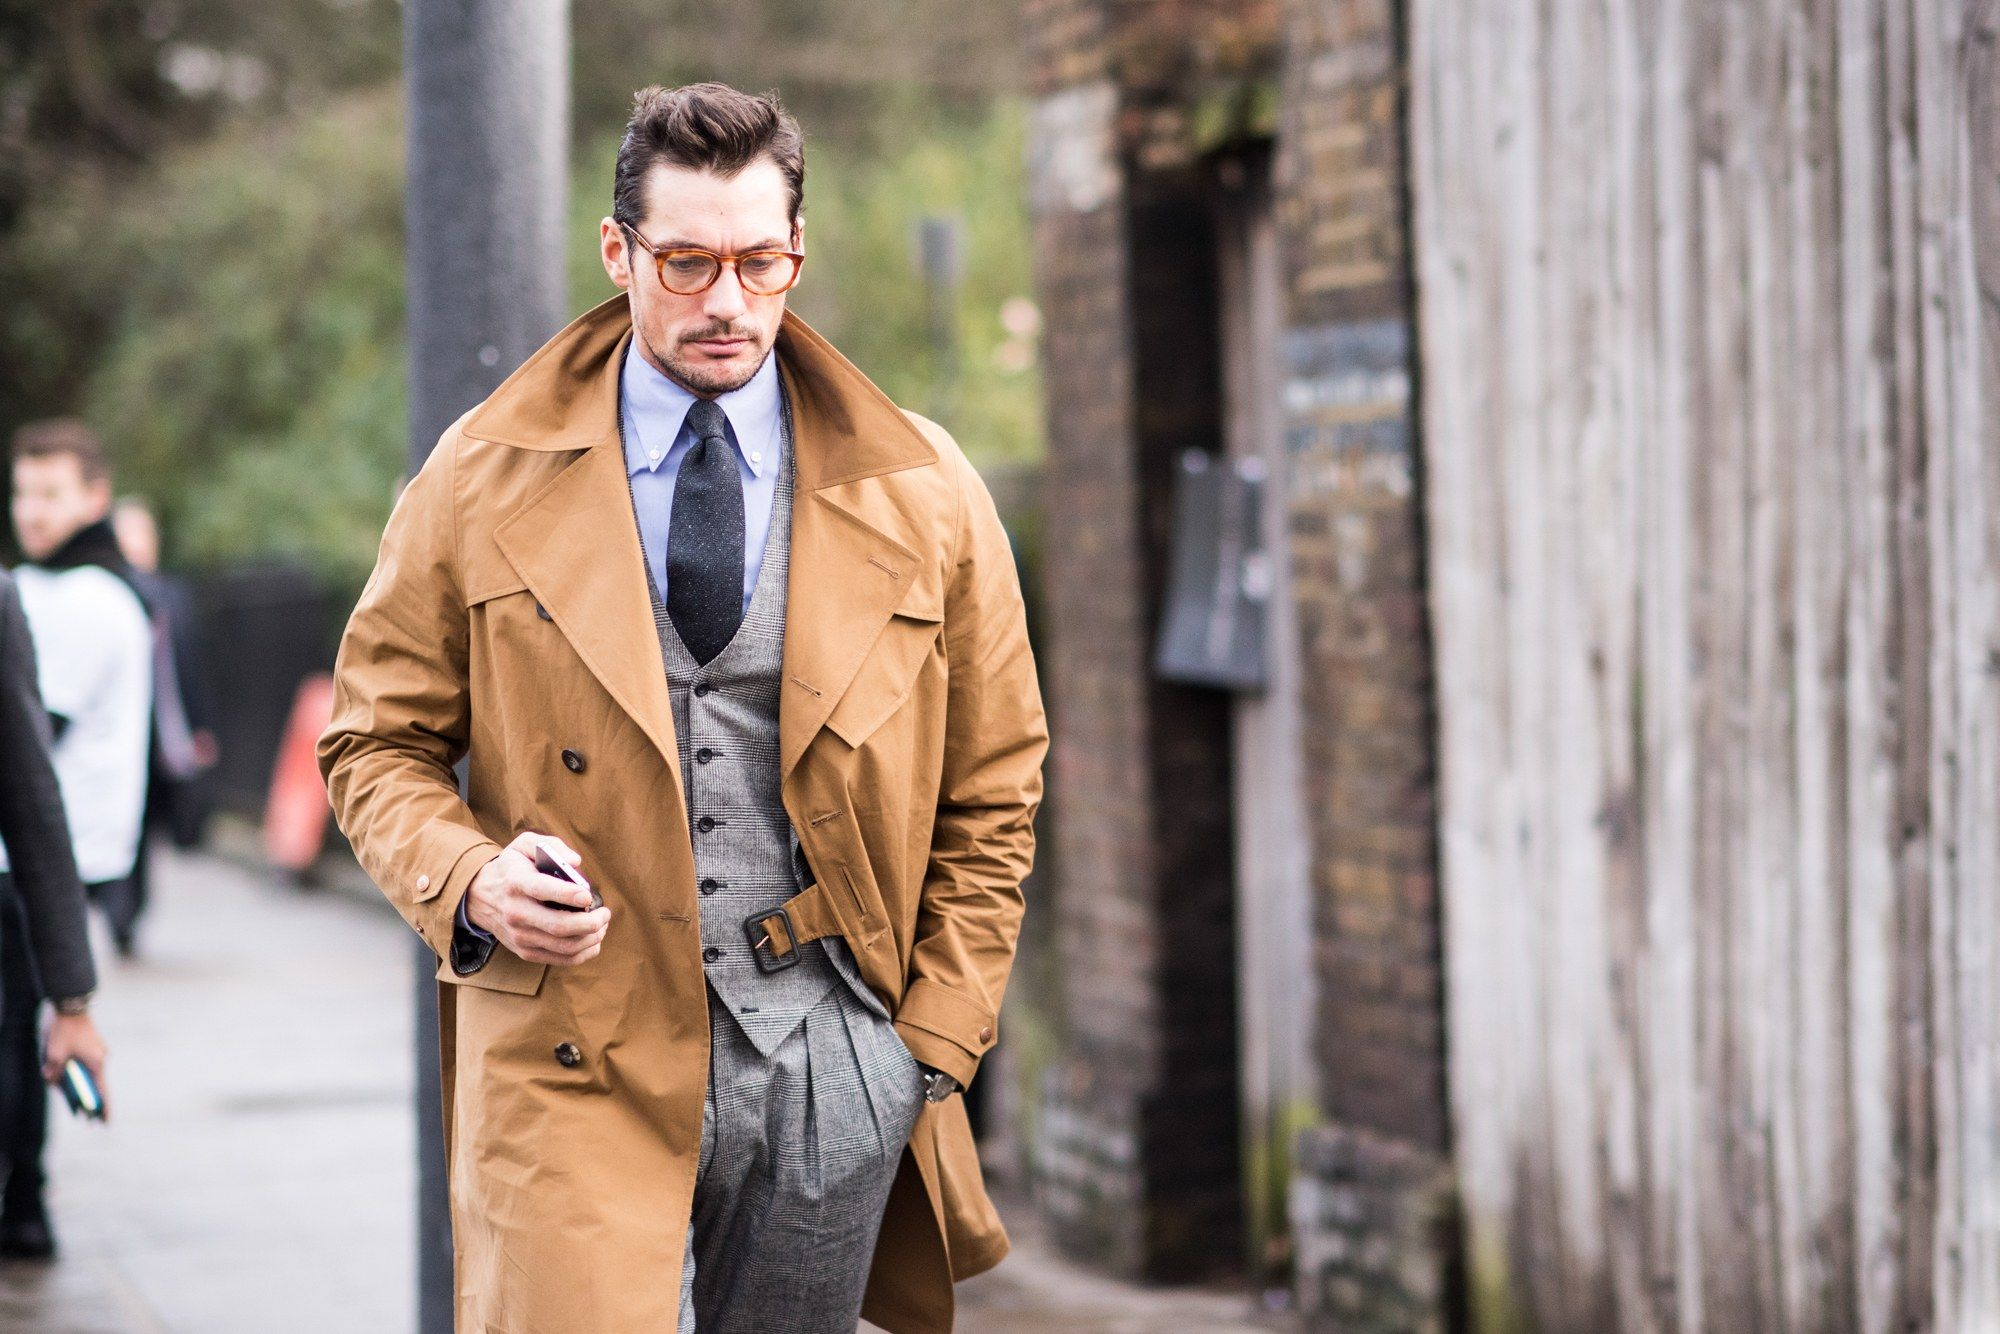 10 Iconic British Brands Every Gentleman Should Know